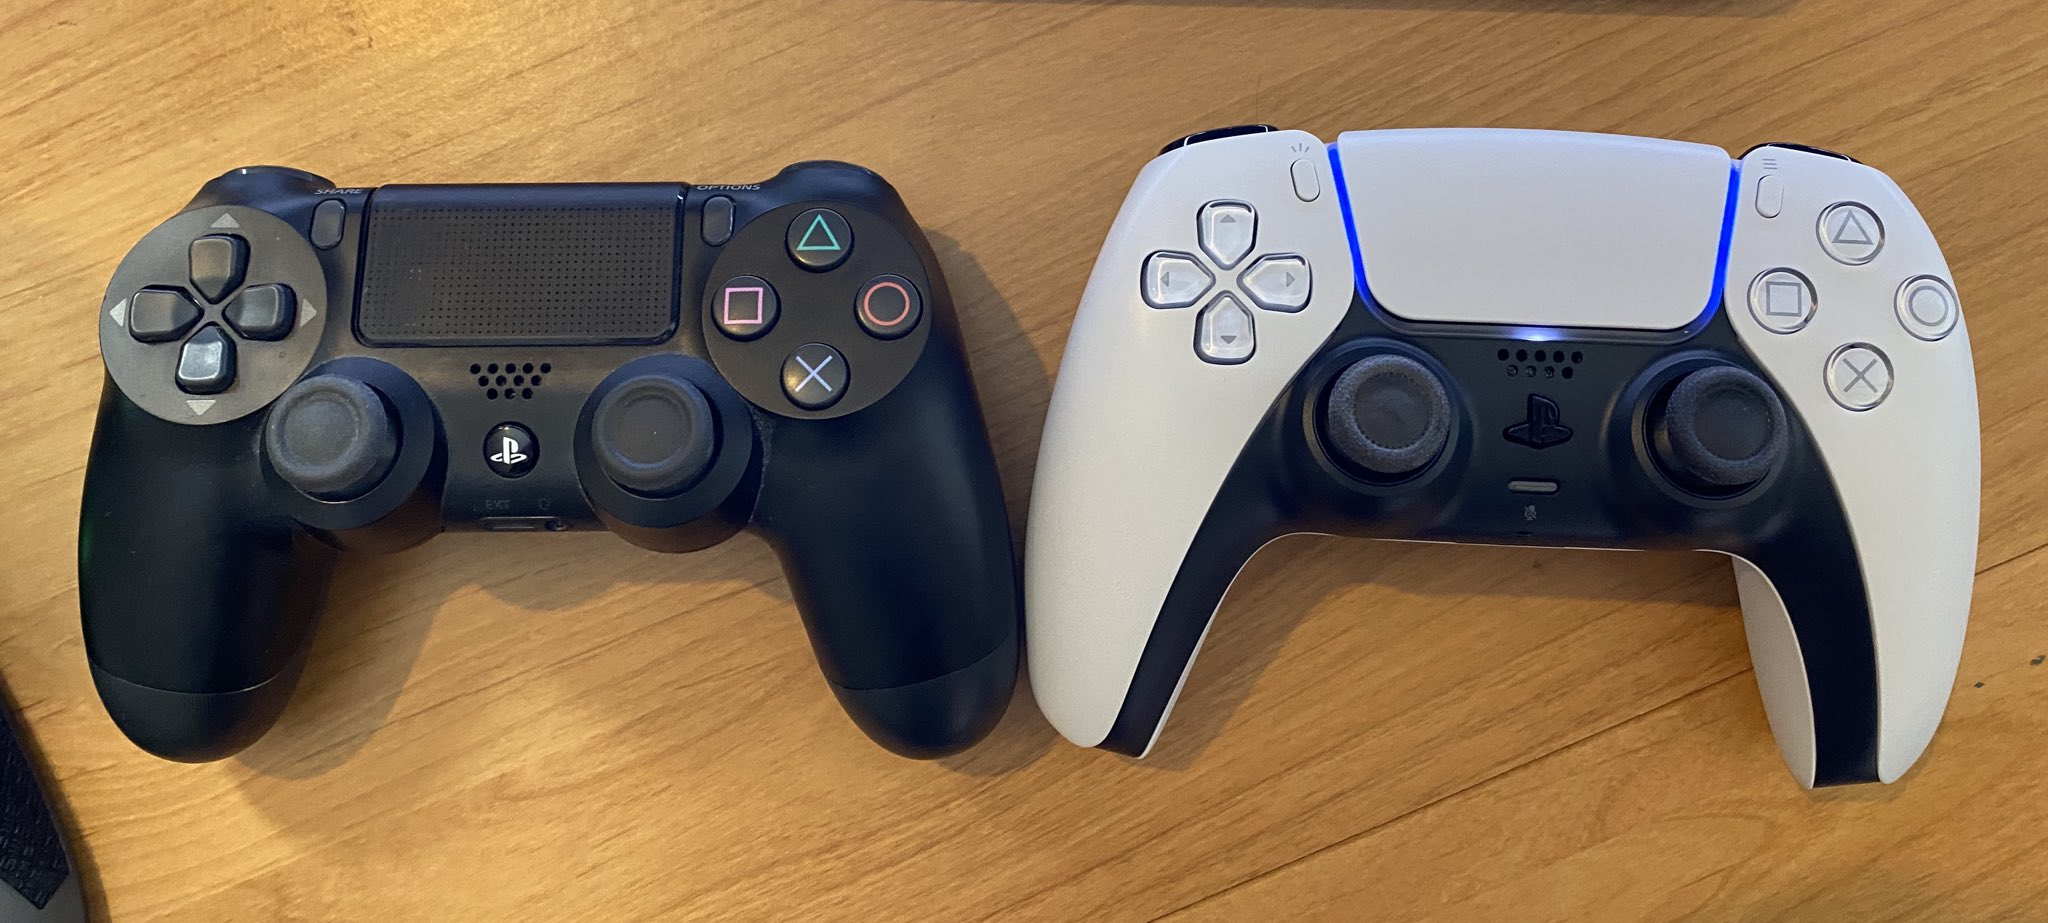 Geoff Keighley Shares His Impressions Of Playstation 5 S Dualsense Controller